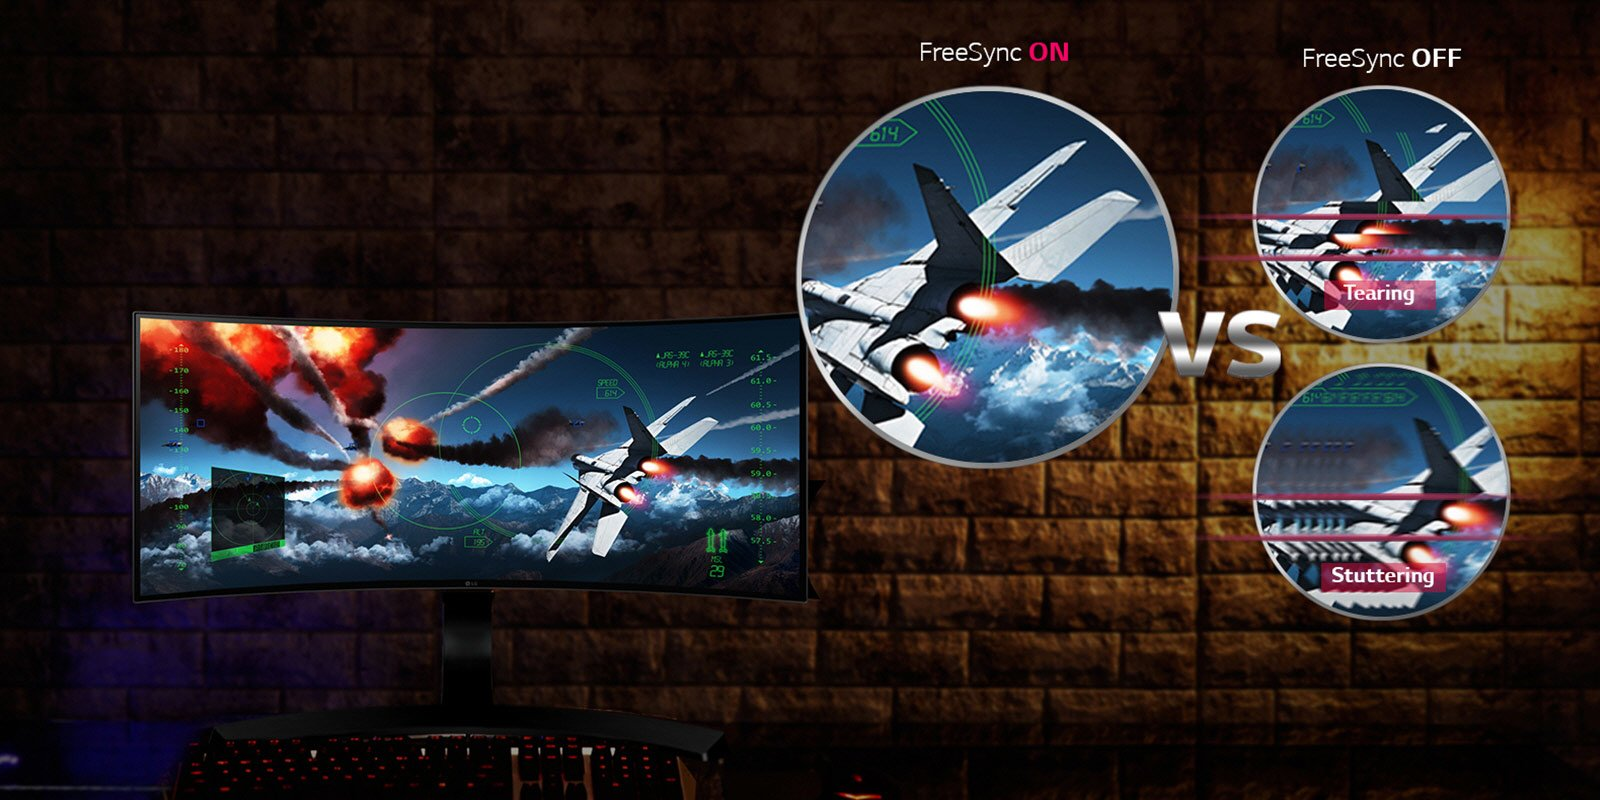 The Big Convergence of FreeSync & 21:9 UltraWide™